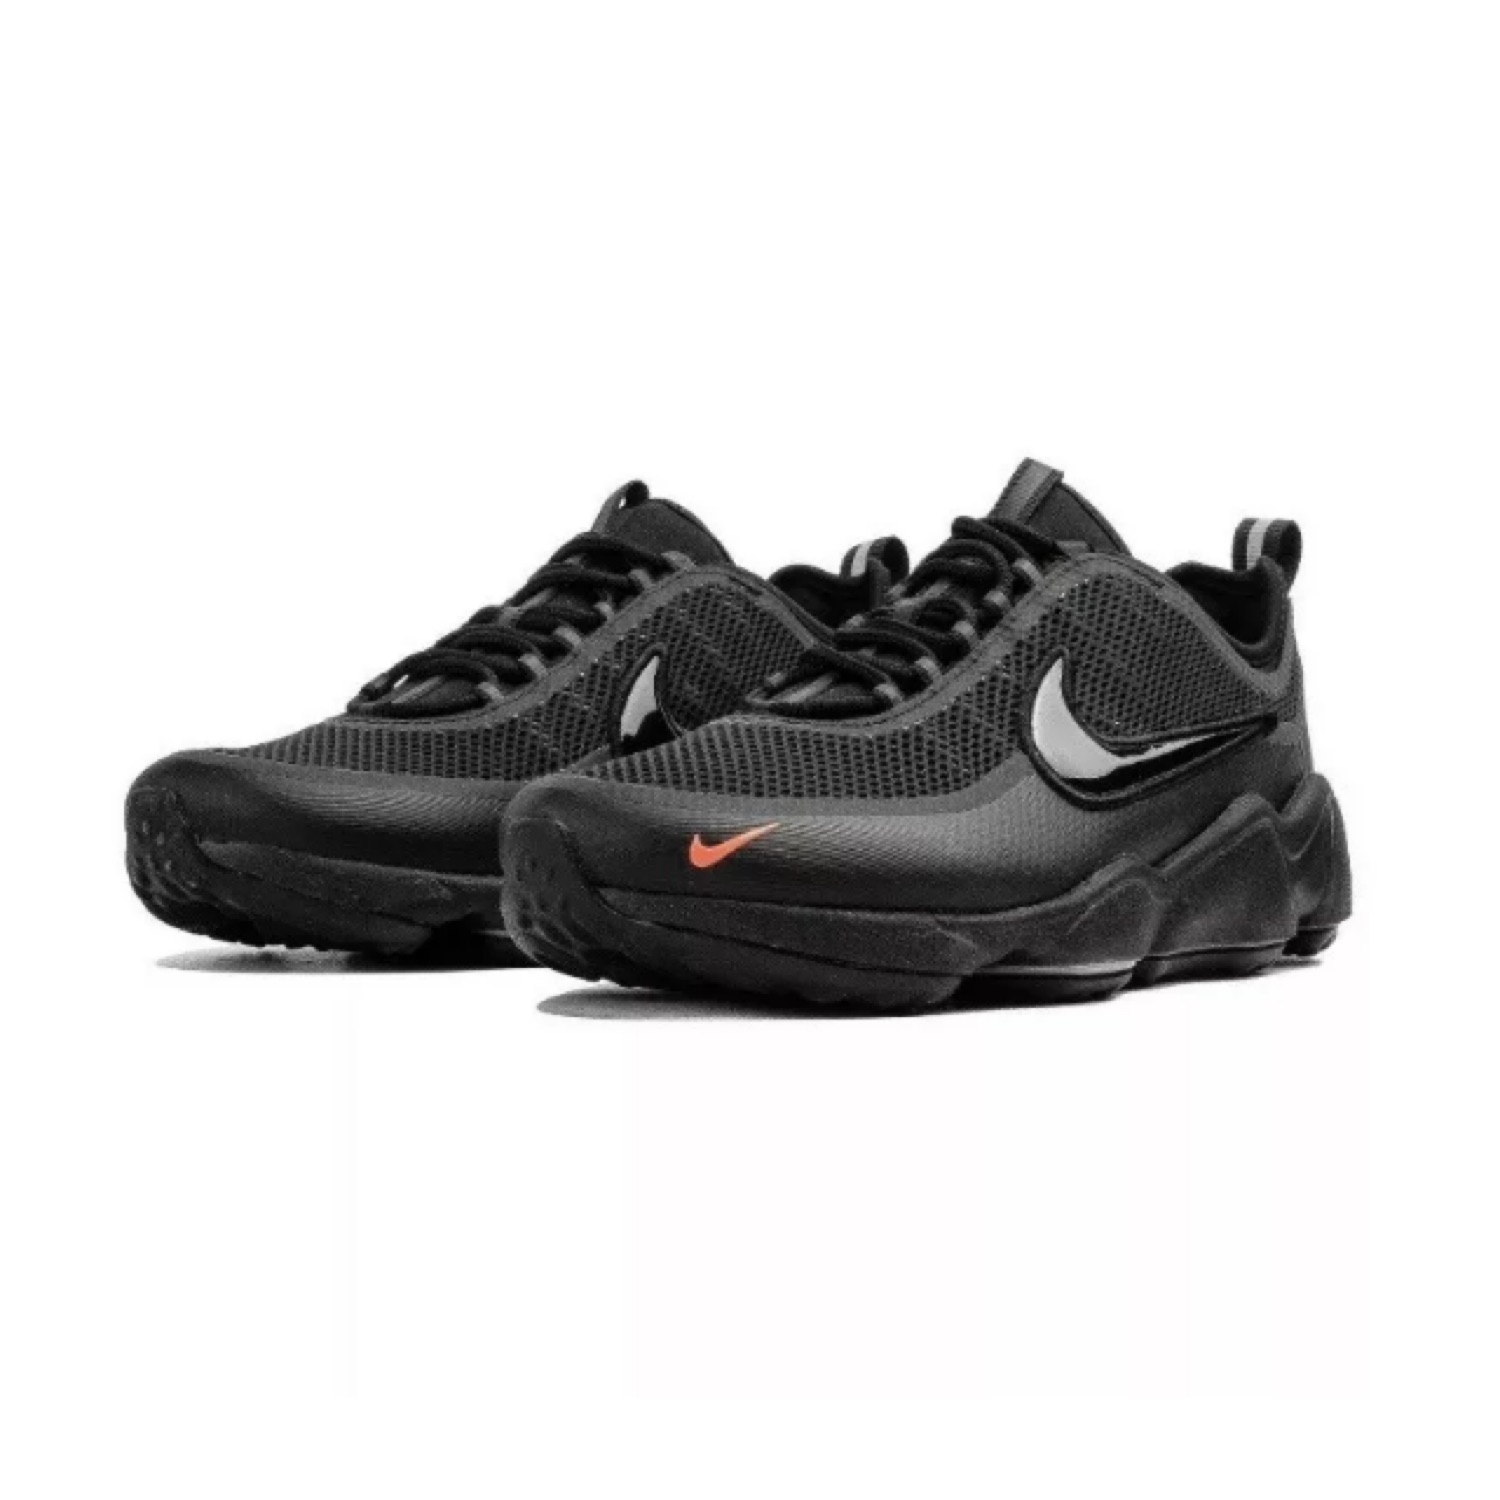 look out for famous brand price reduced Nike Air Zoom Spiridon Ultra Black Red 876267-200